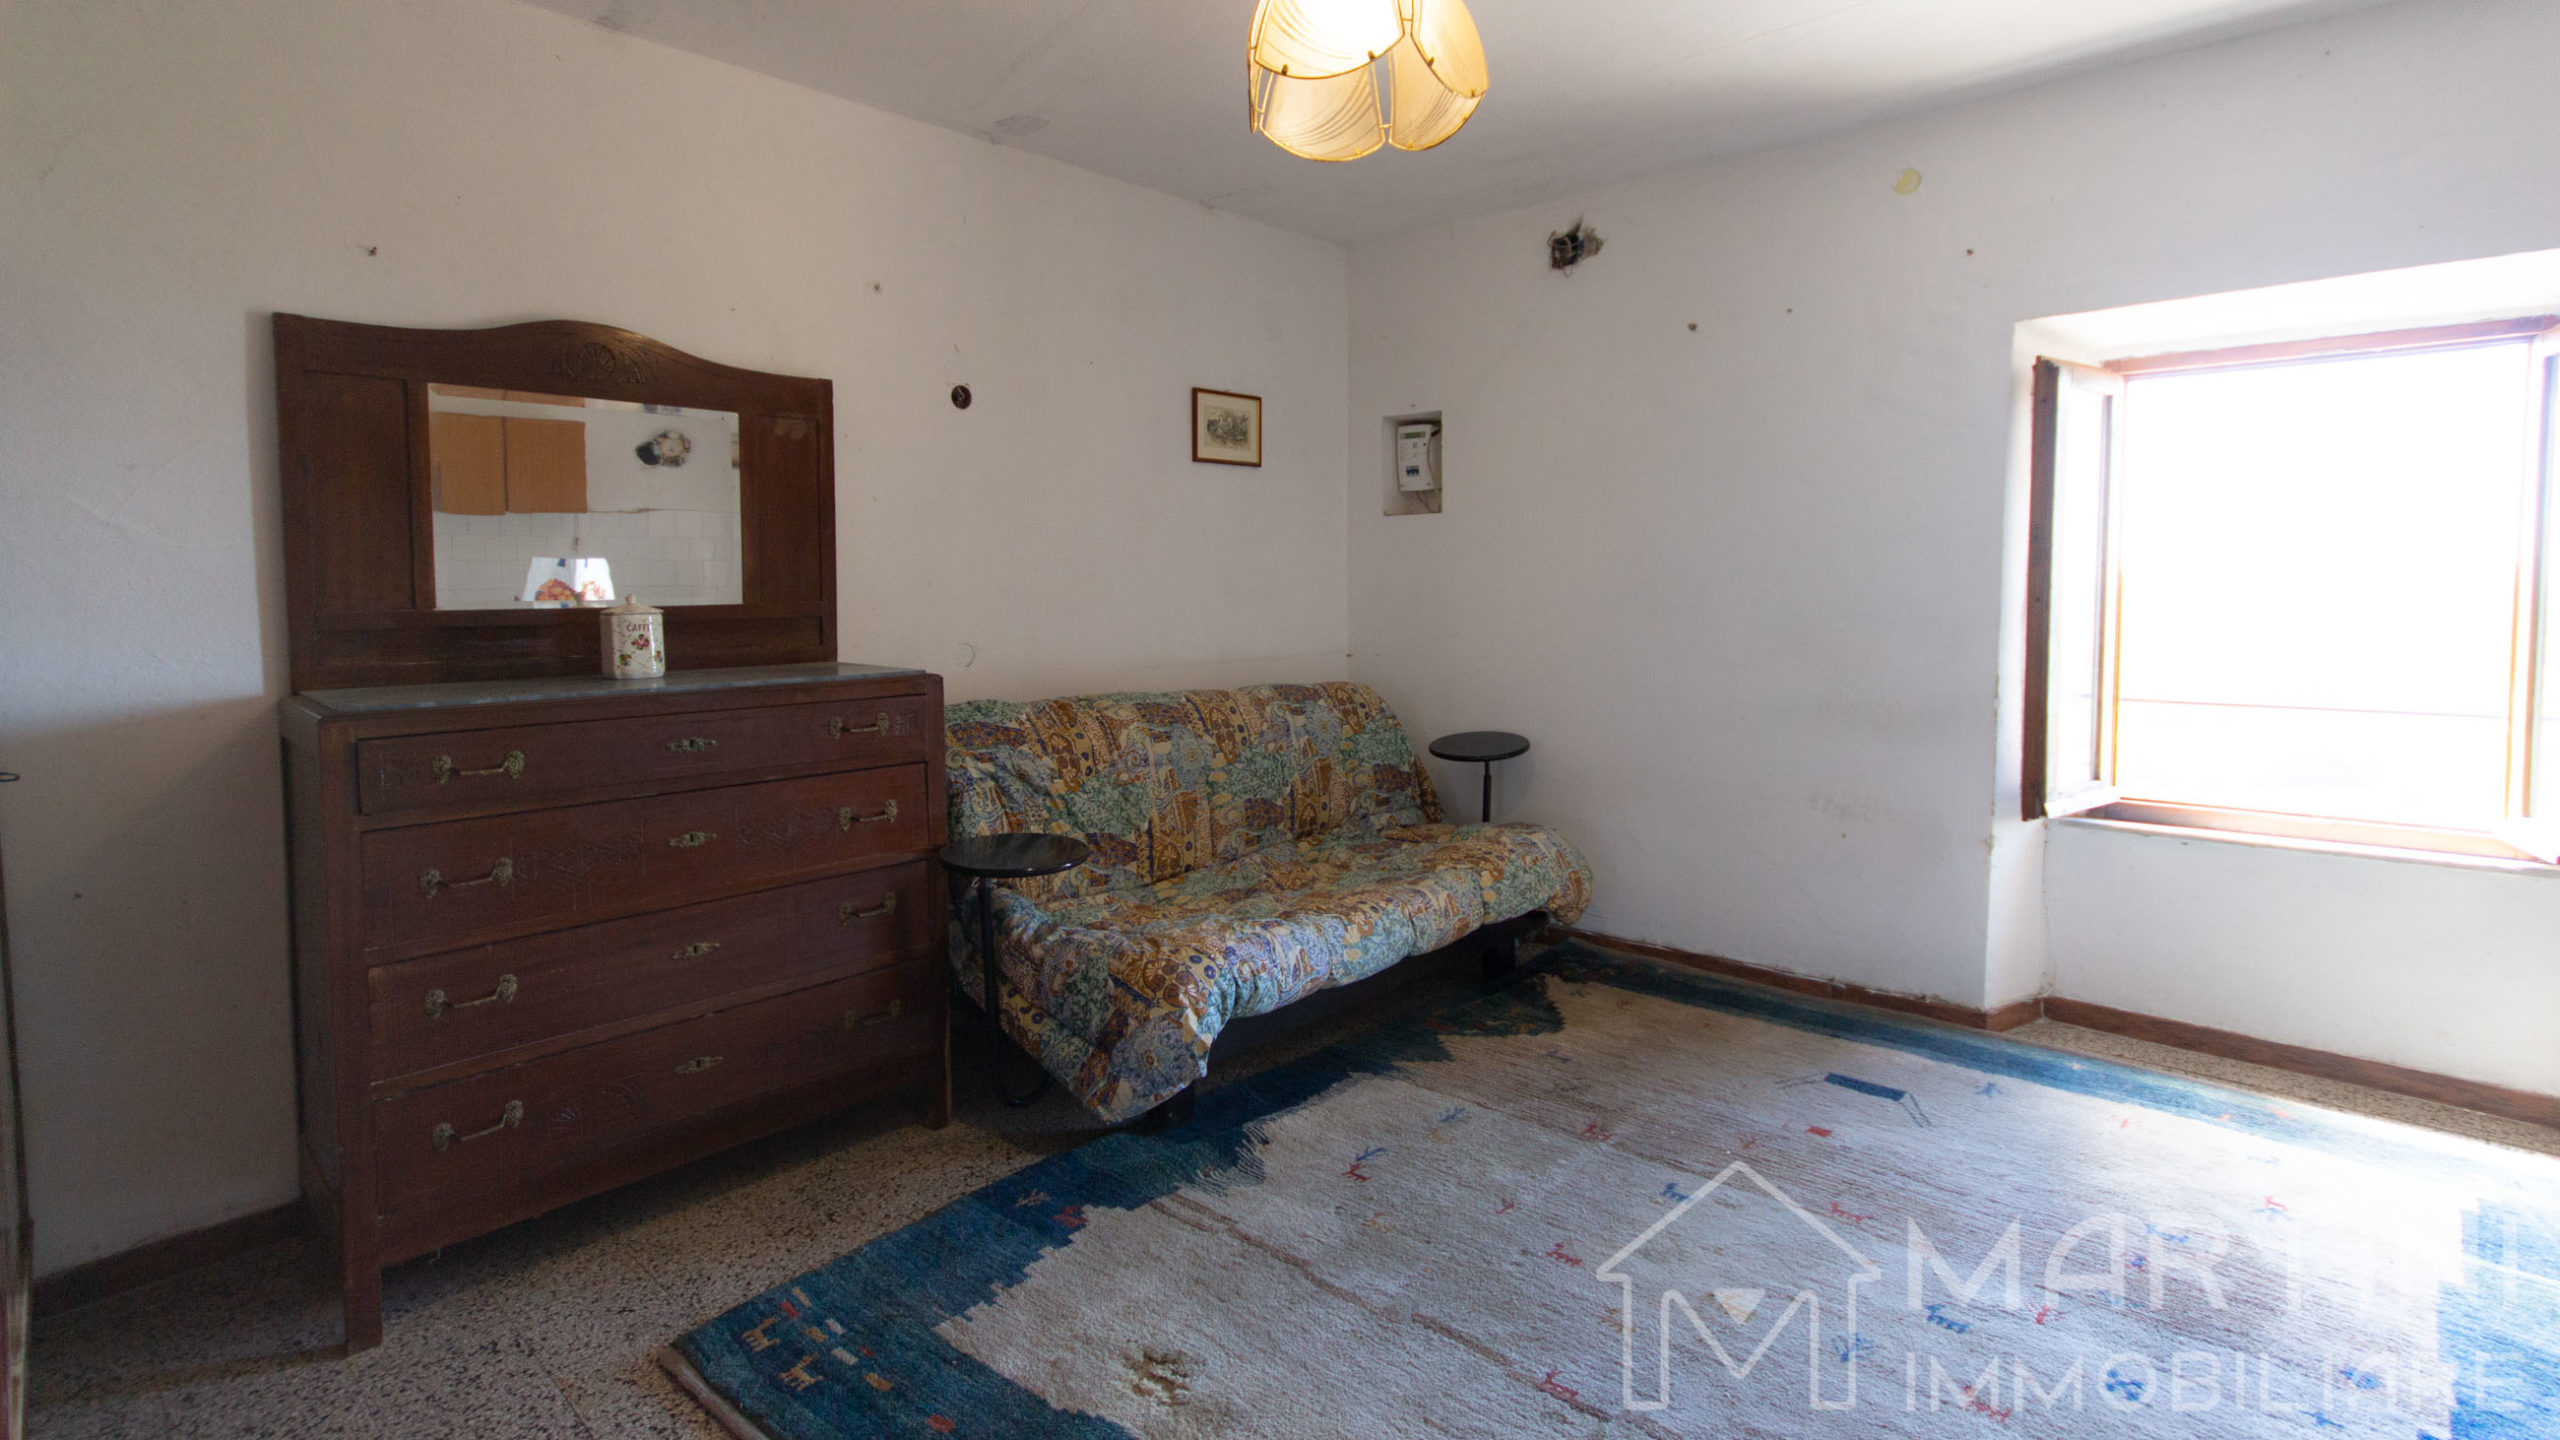 Studio Apartment For Sale in Tuscany